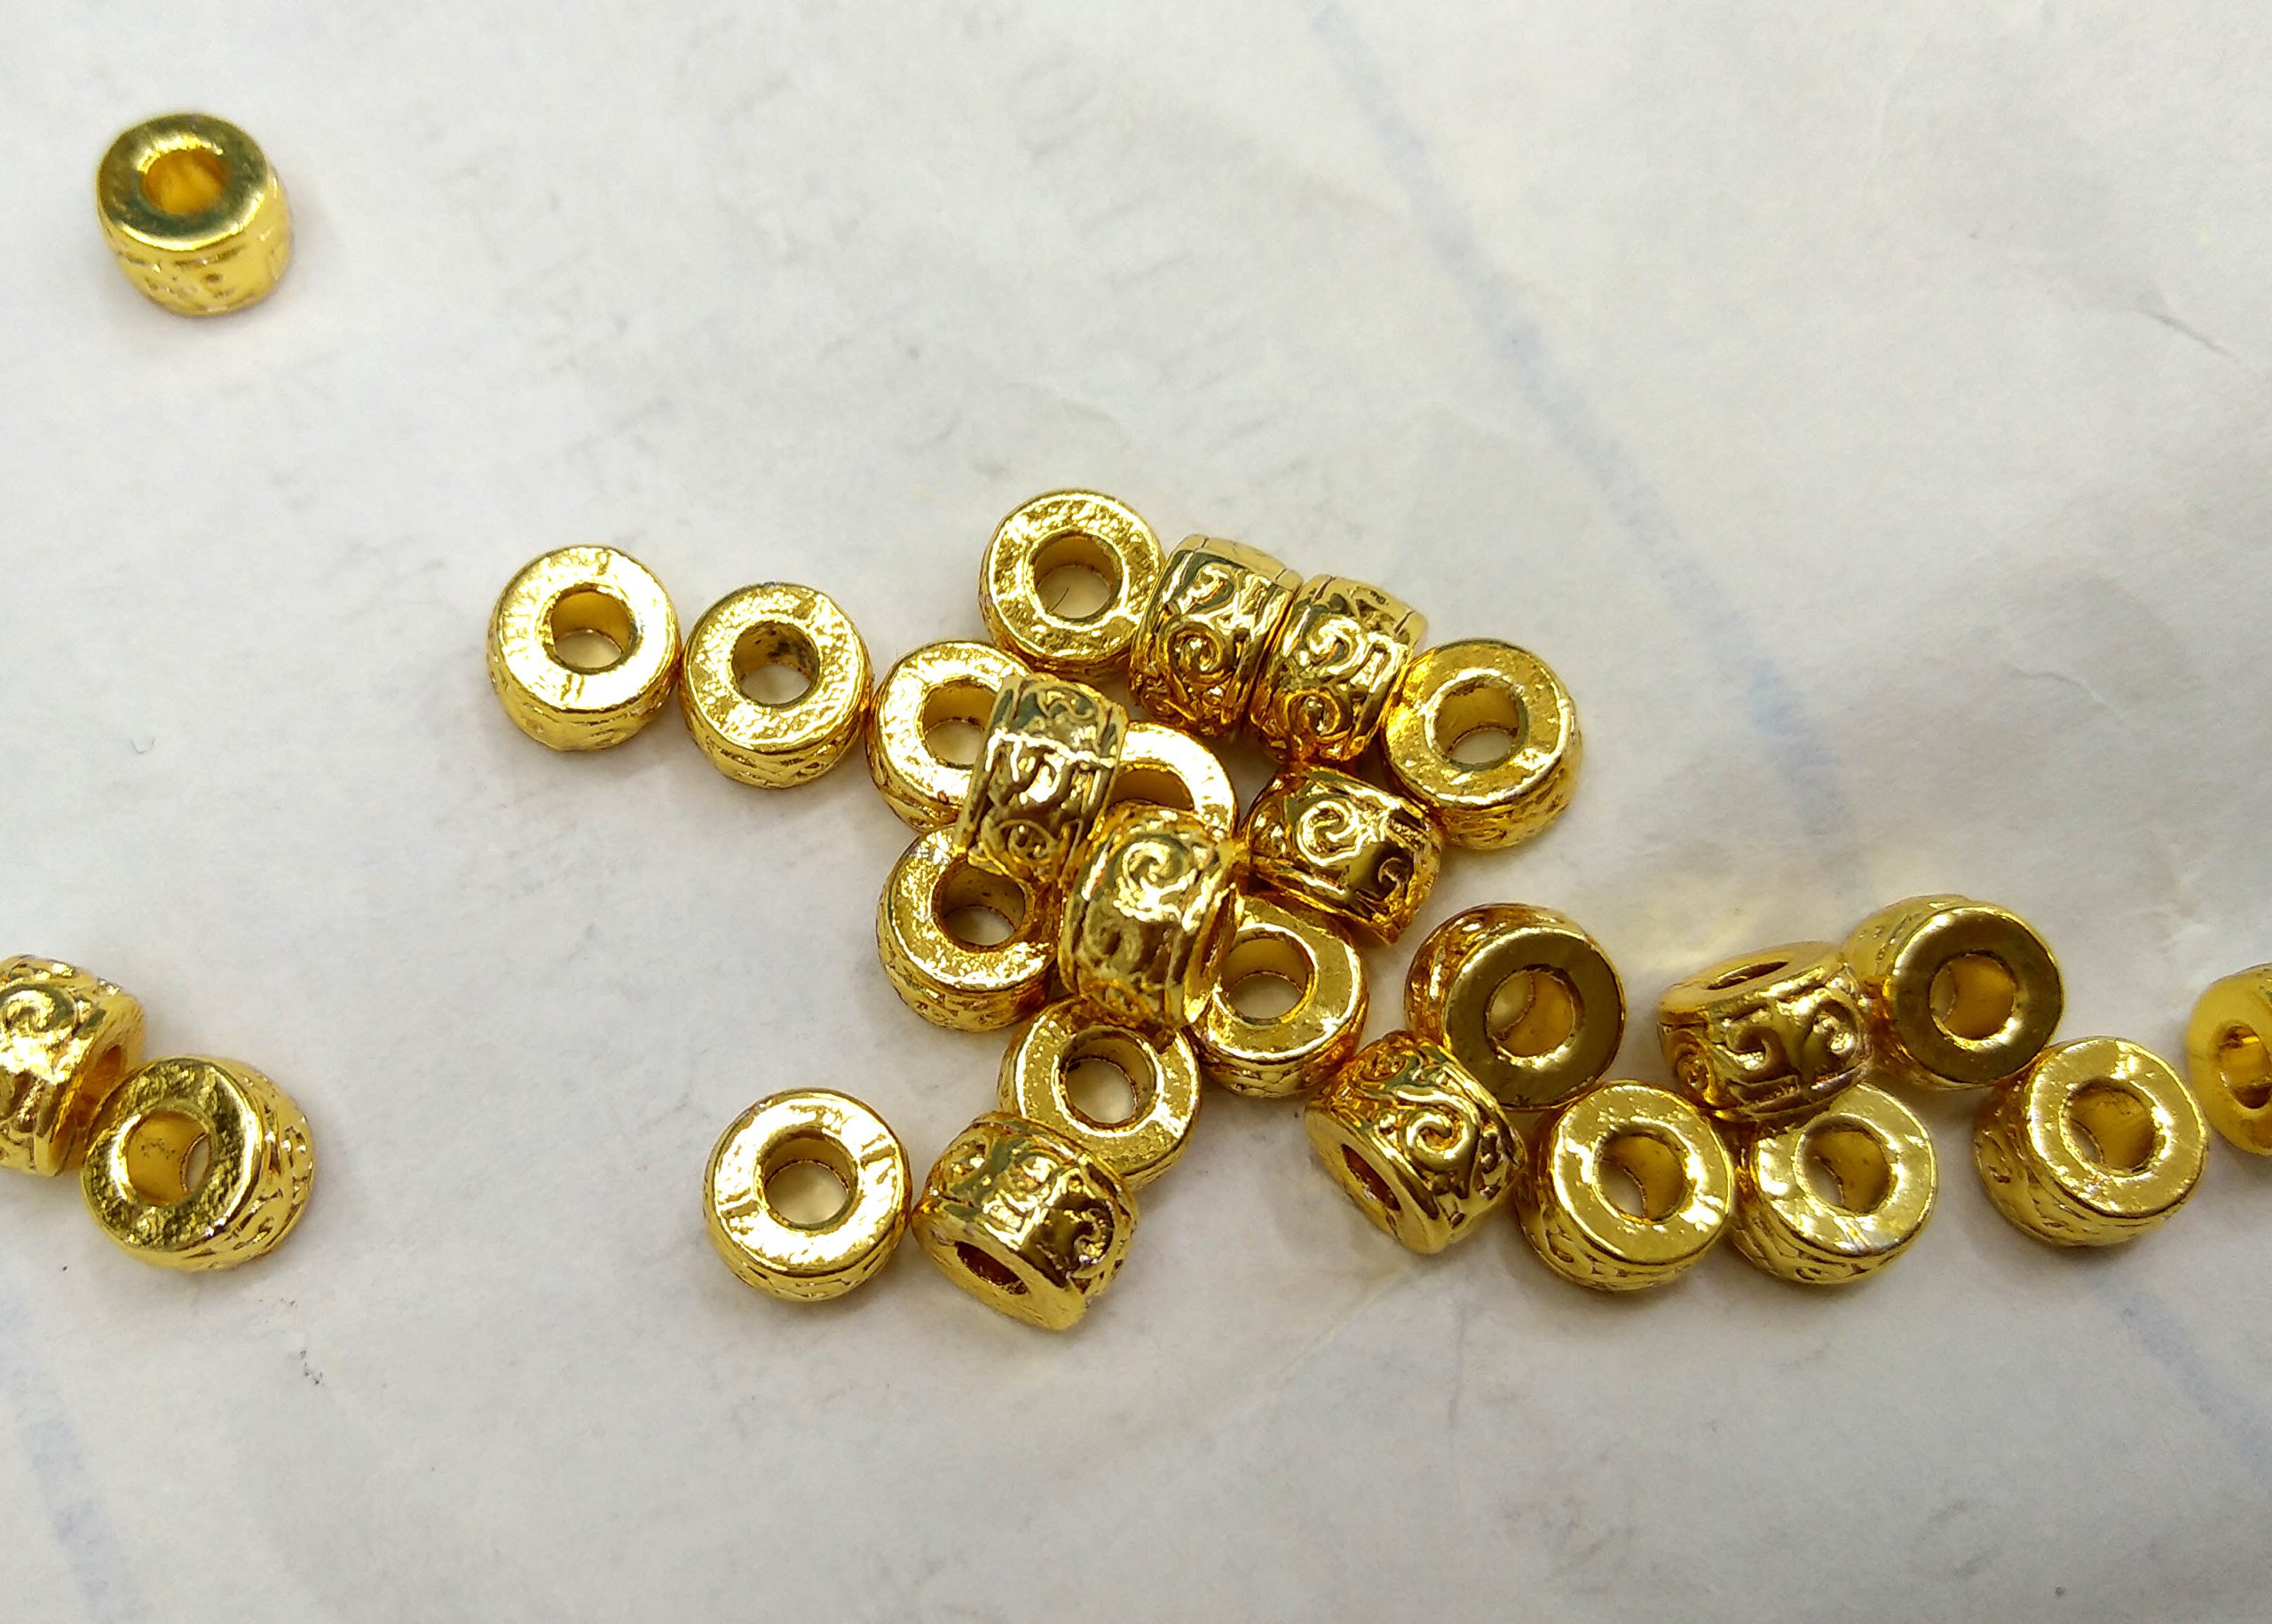 100pcs 6mm 14K real solid gold seamless round beads,Round Rondelle Solid Brass Bead, Rose Gold,Silver Gunmetal Spacer beads